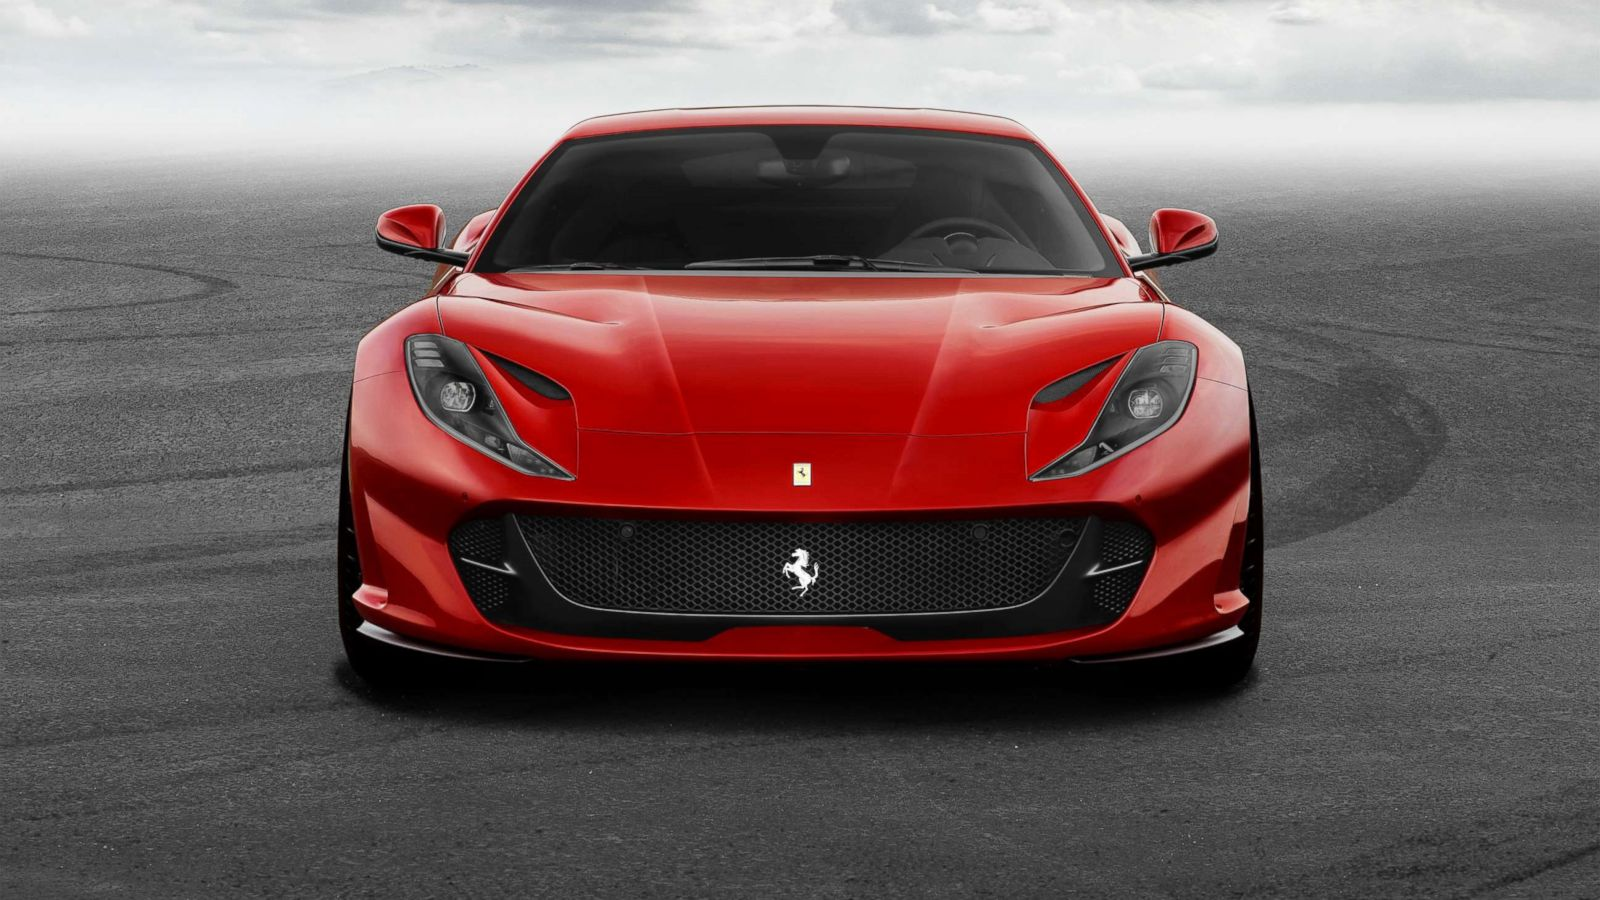 Ferrari Purists Brace For Change As Famed Italian Automaker Takes The On Ramp To Suvs And Hybrids Abc News